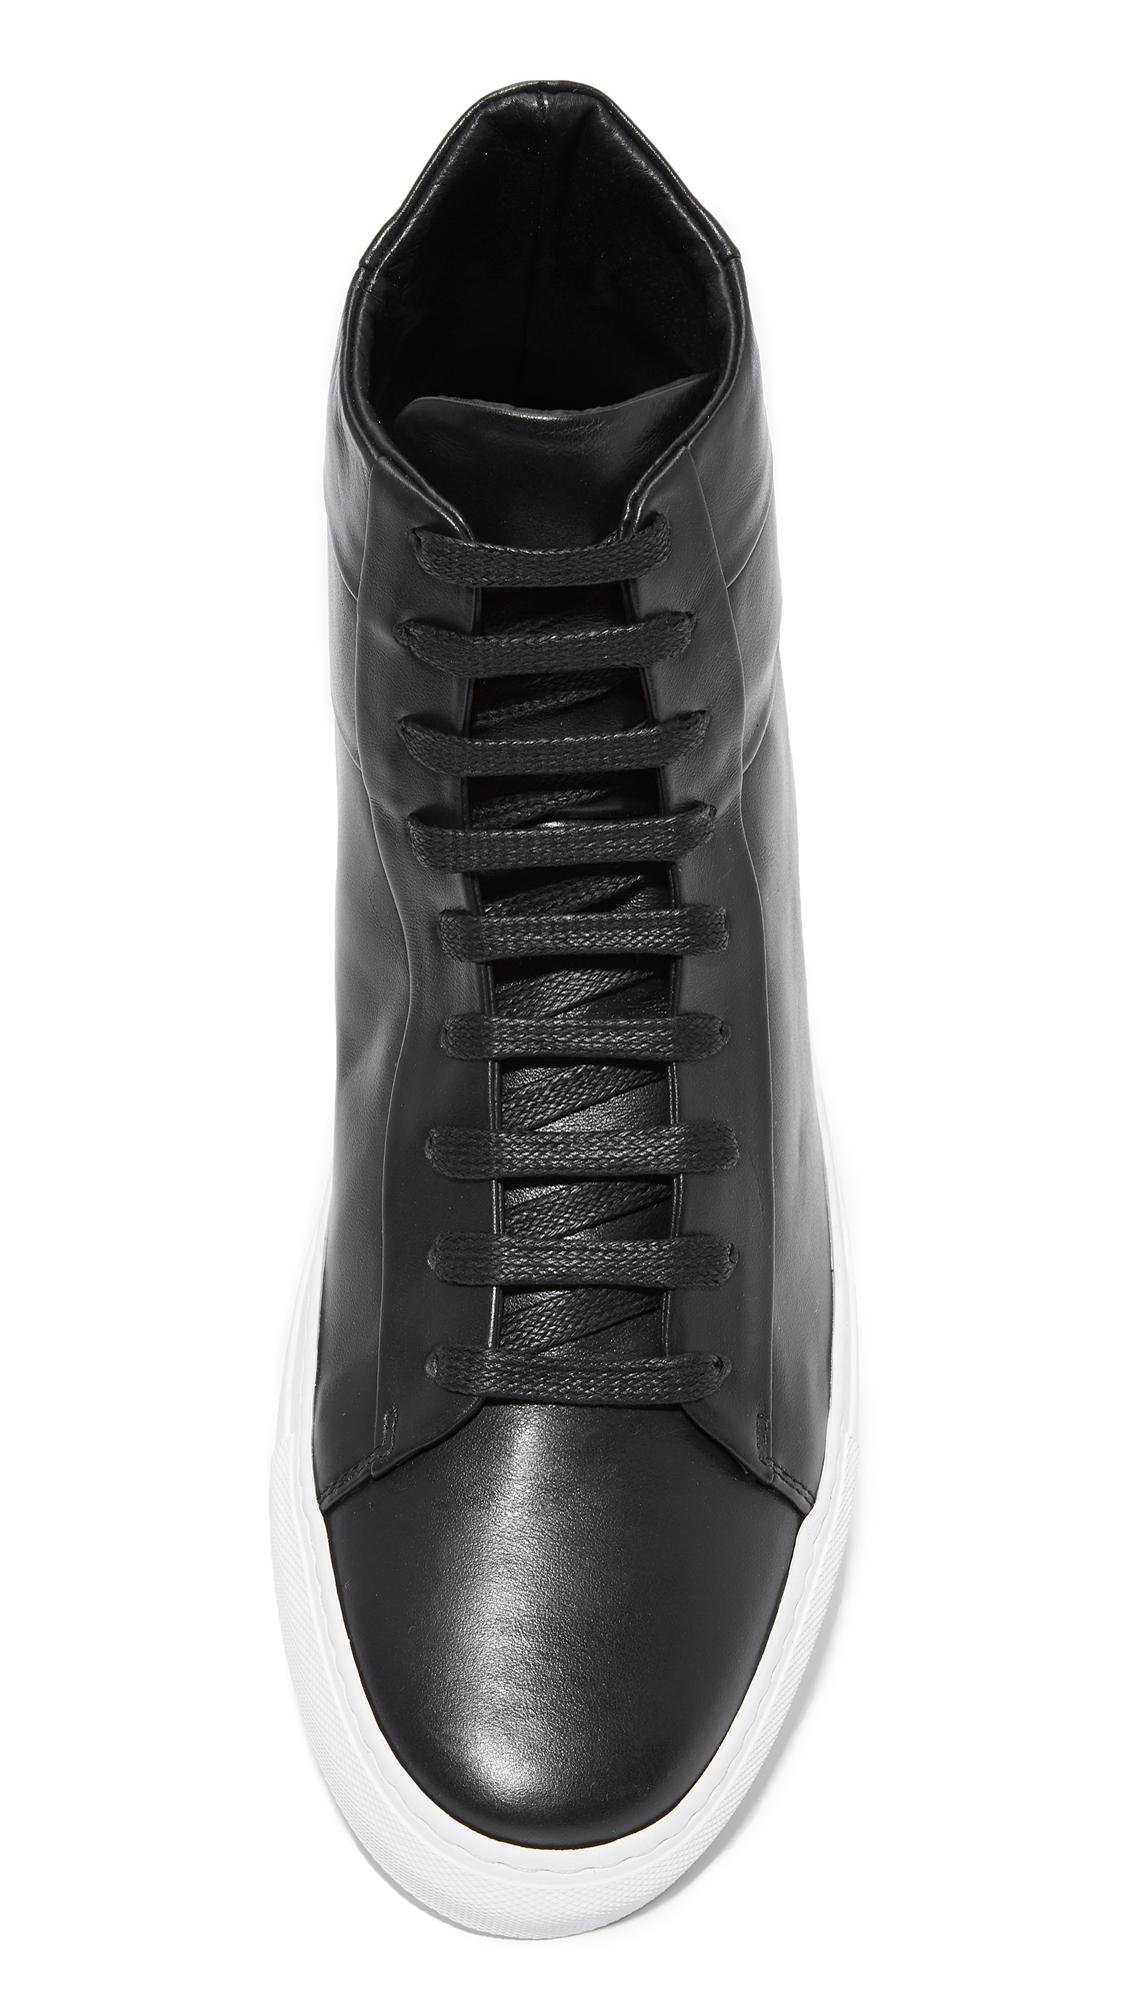 122bbc3786 Wings + Horns Black Court High Sneakers for men